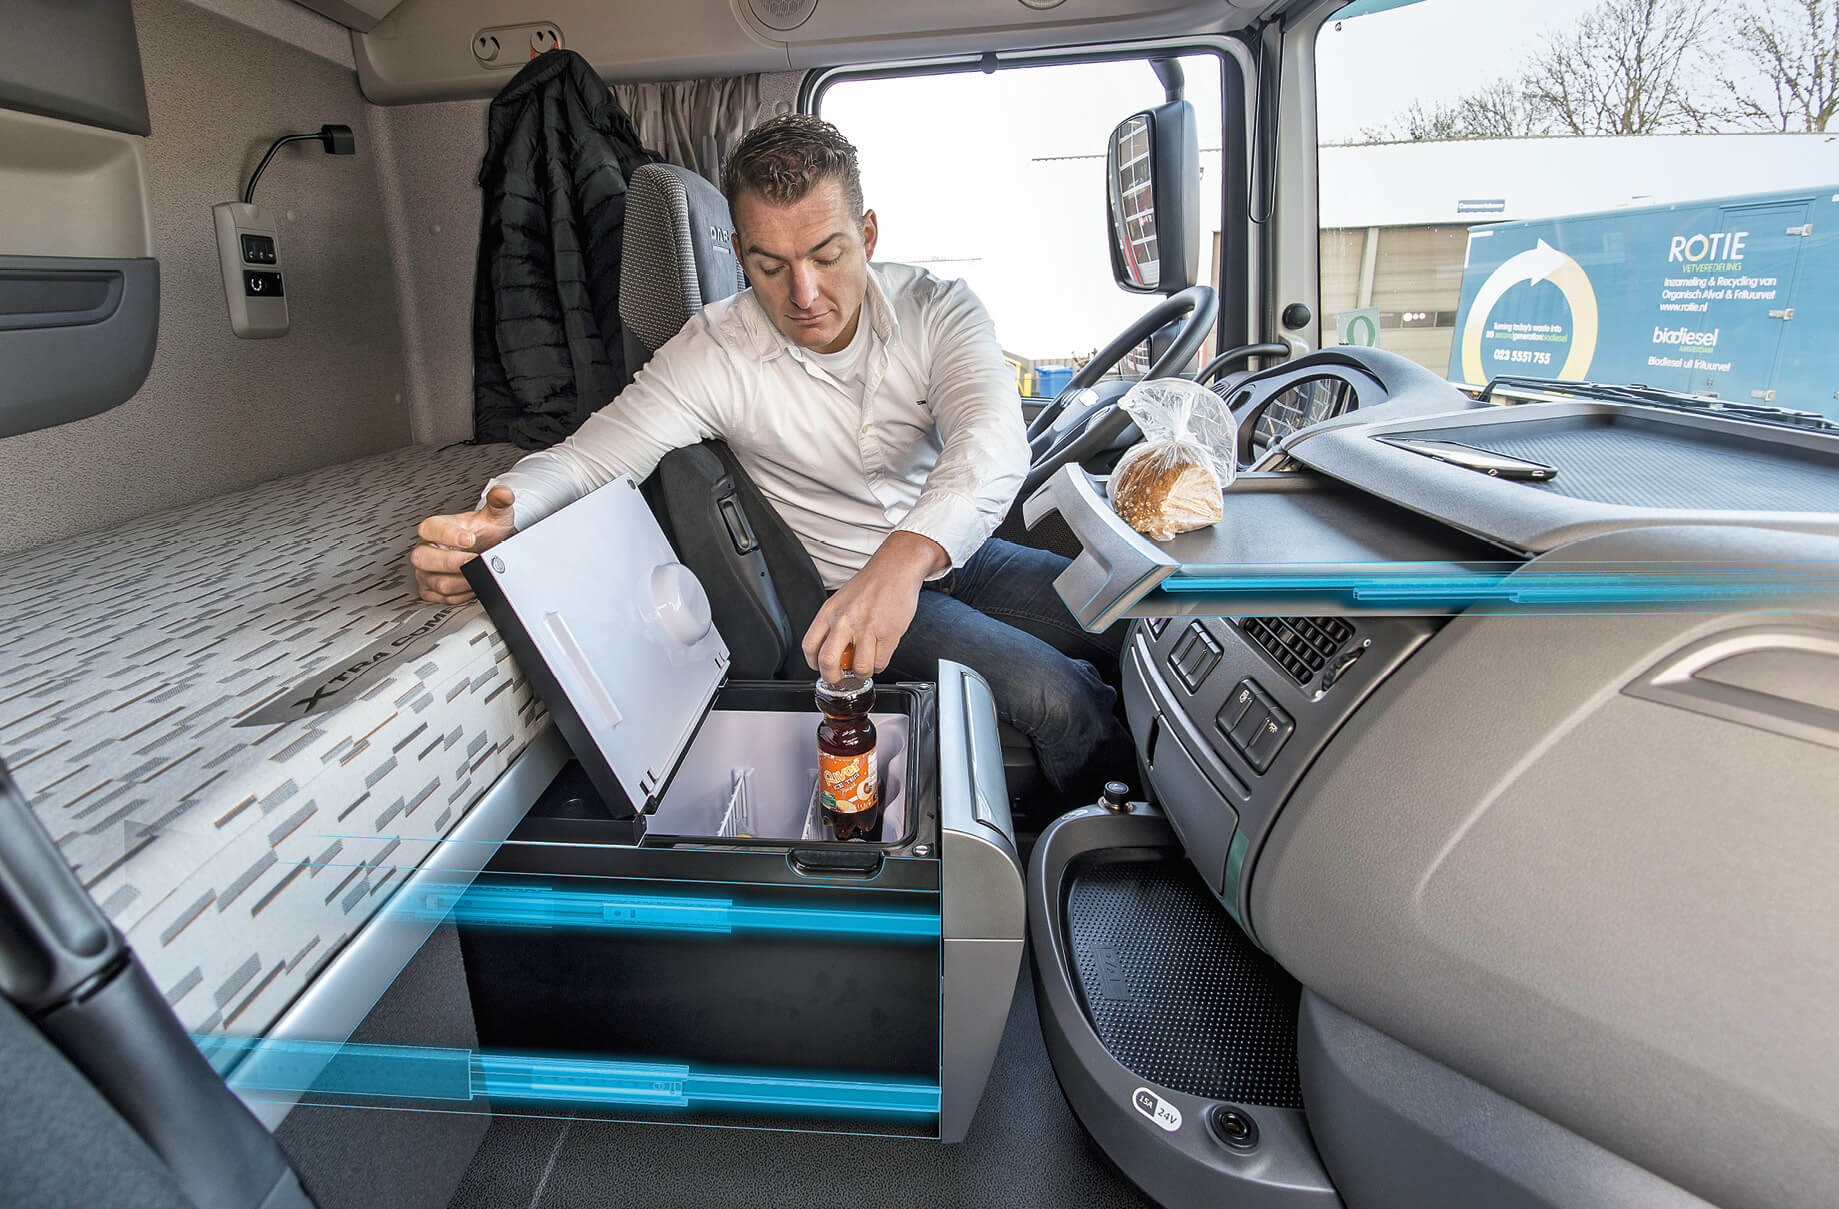 Trucks – Incorporated into the centre console, the rails provide additional storage surfaces and better access to the refrigerator for added convenience.